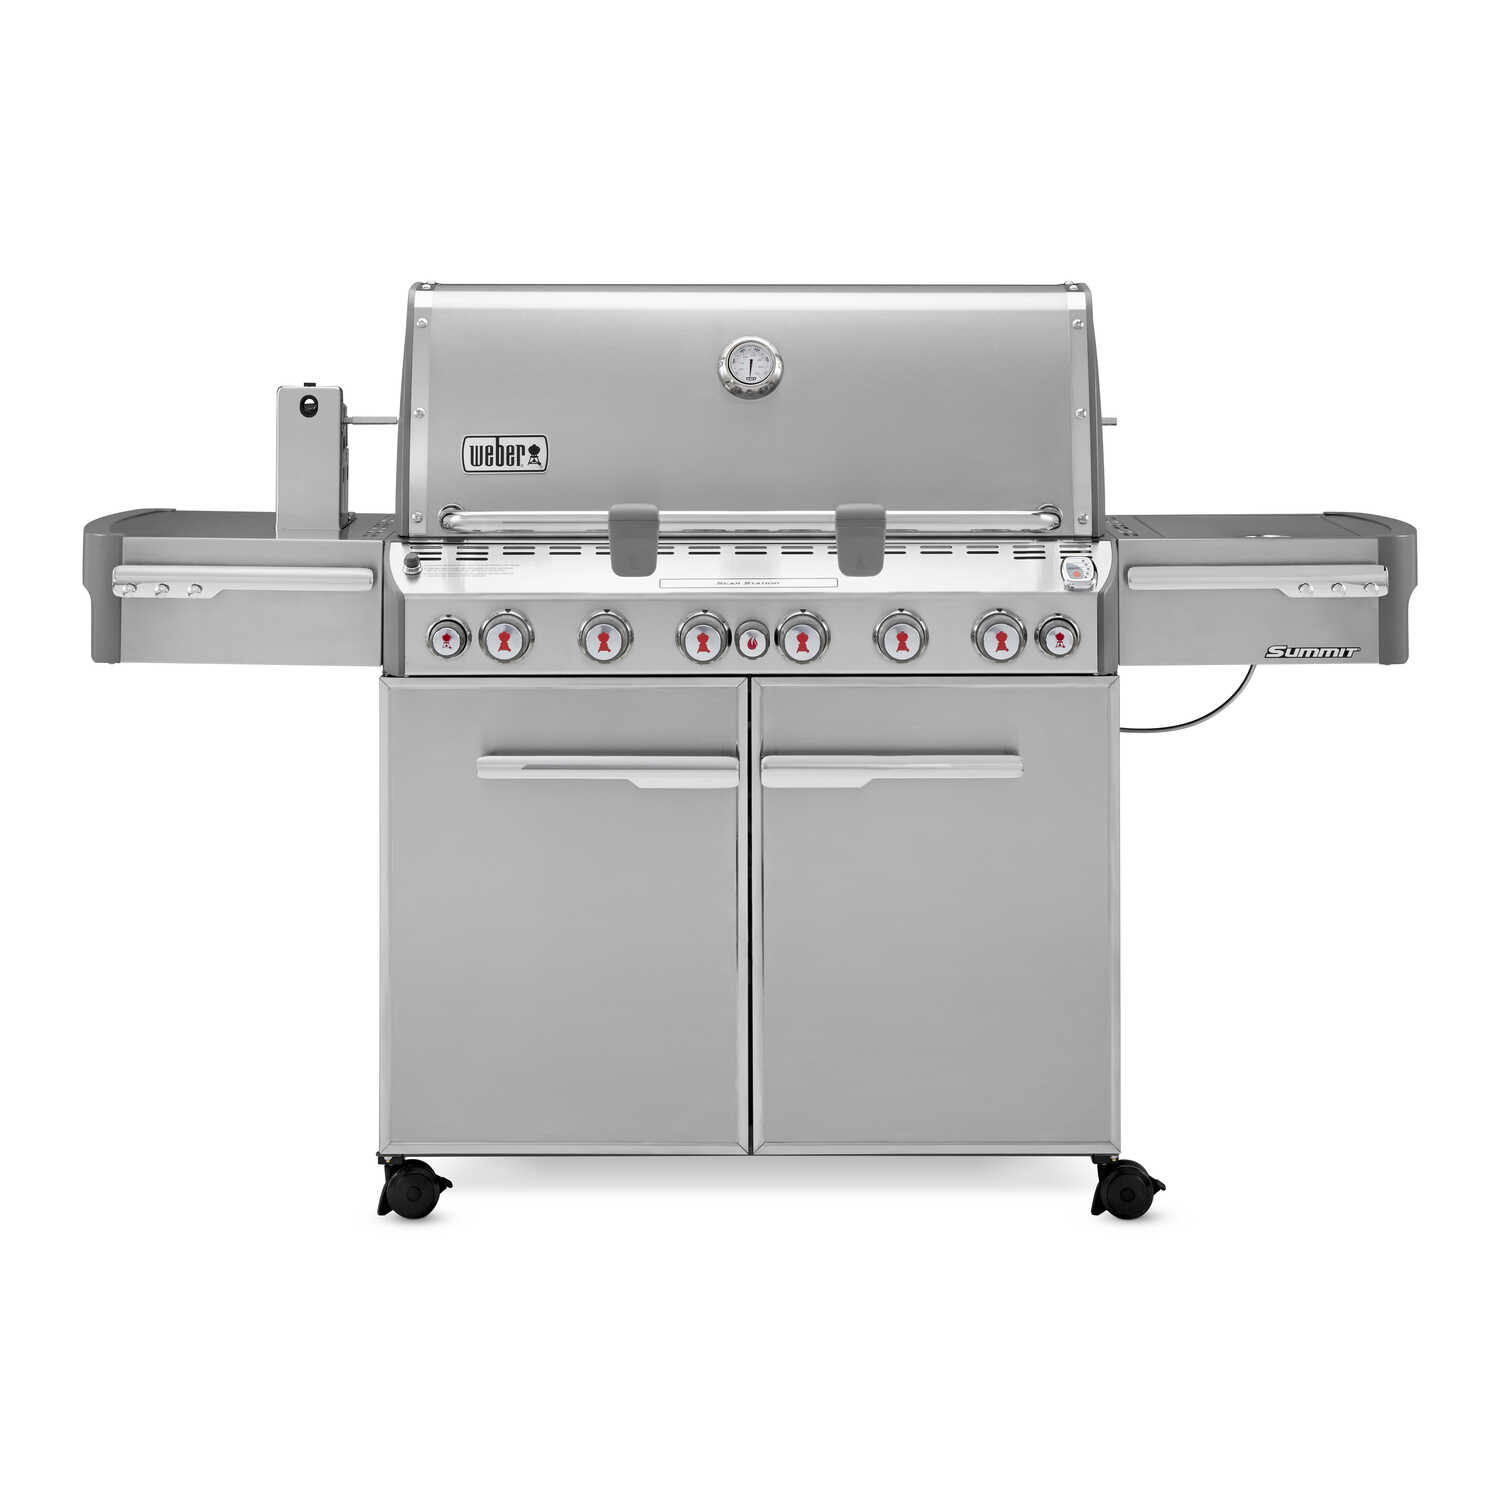 Weber  Summit S-670  Liquid Propane  Freestanding  6 burners Stainless Steel  Grill